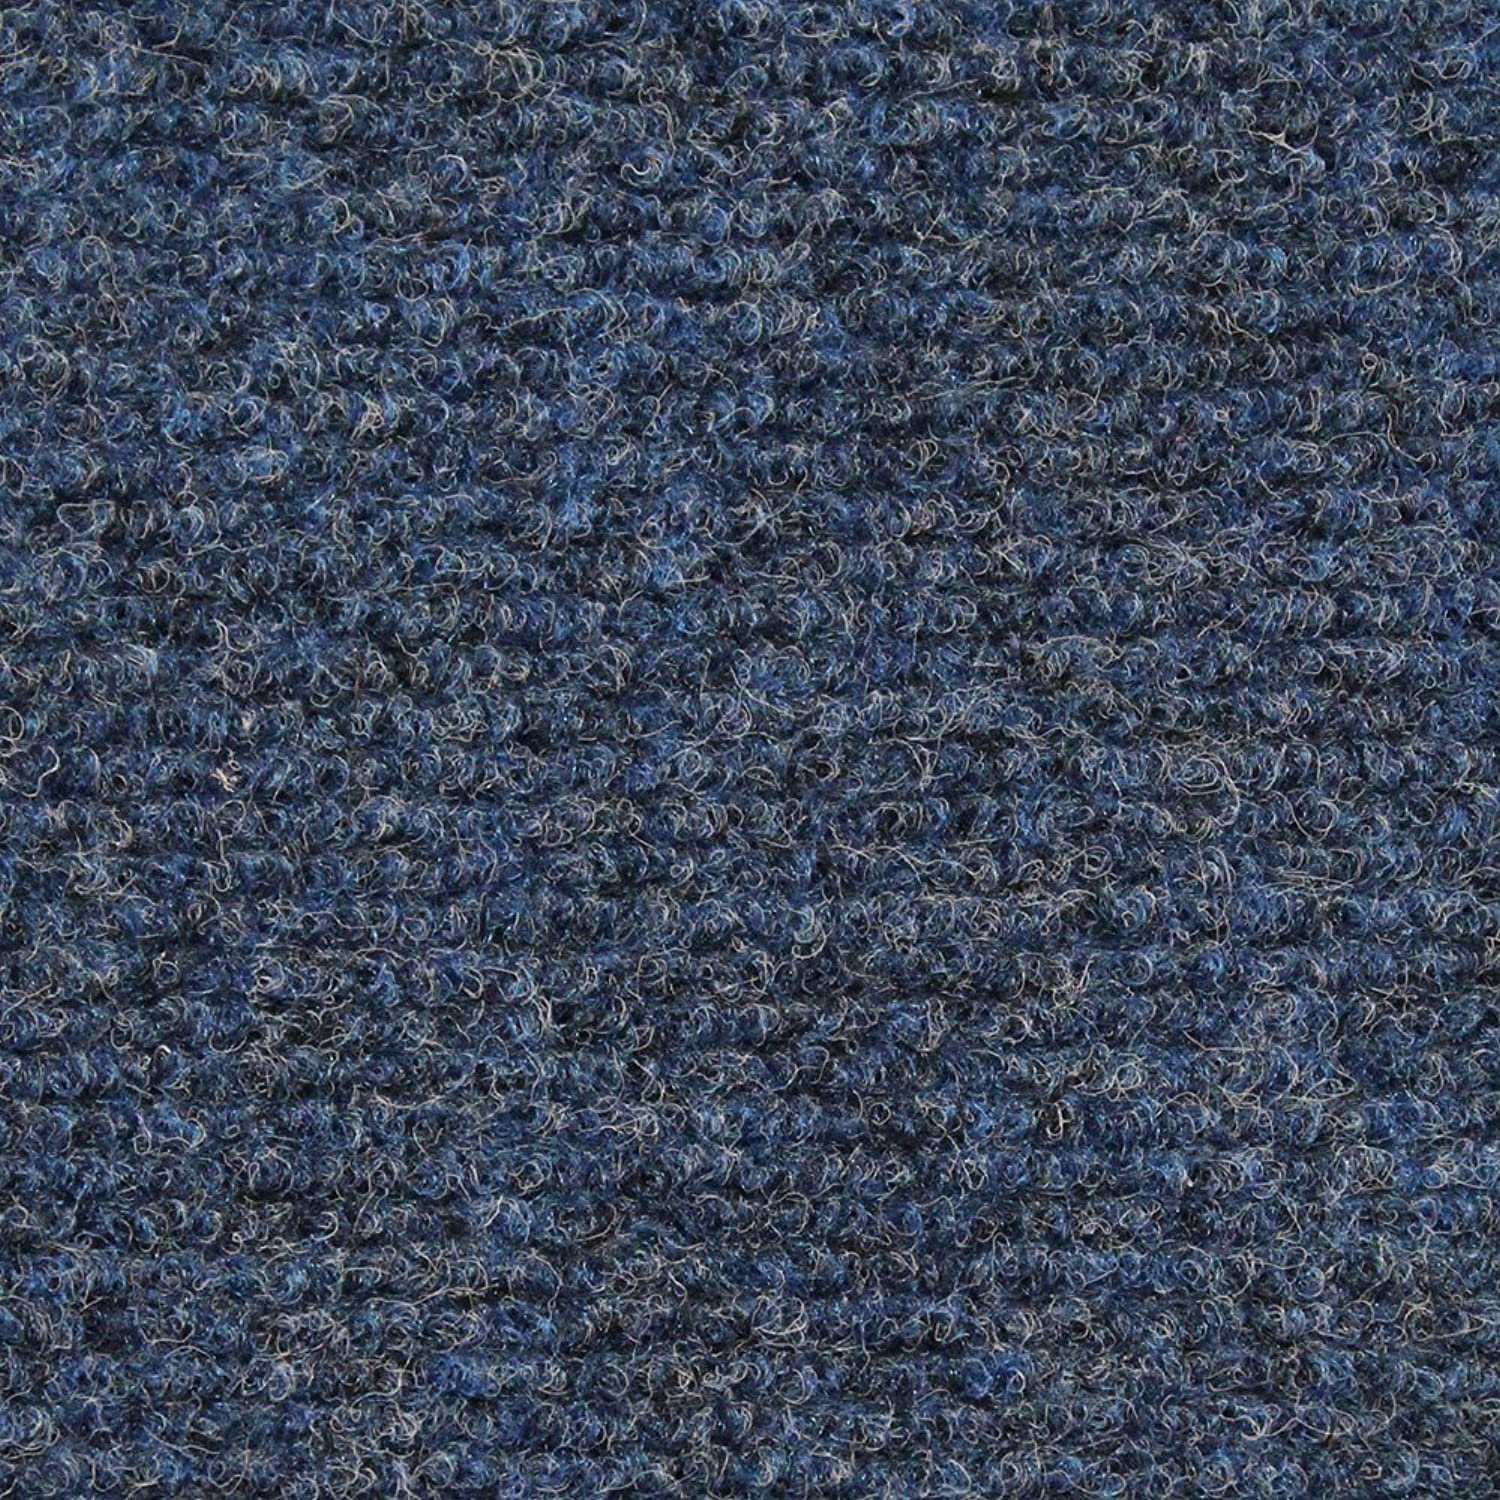 House, Home and More Indoor Outdoor Carpet with Rubber Marine Backing - bluee 6& 39; x 10& 39; - Carpet Flooring for Patio, Porch, Deck, Boat, Basement or Garage